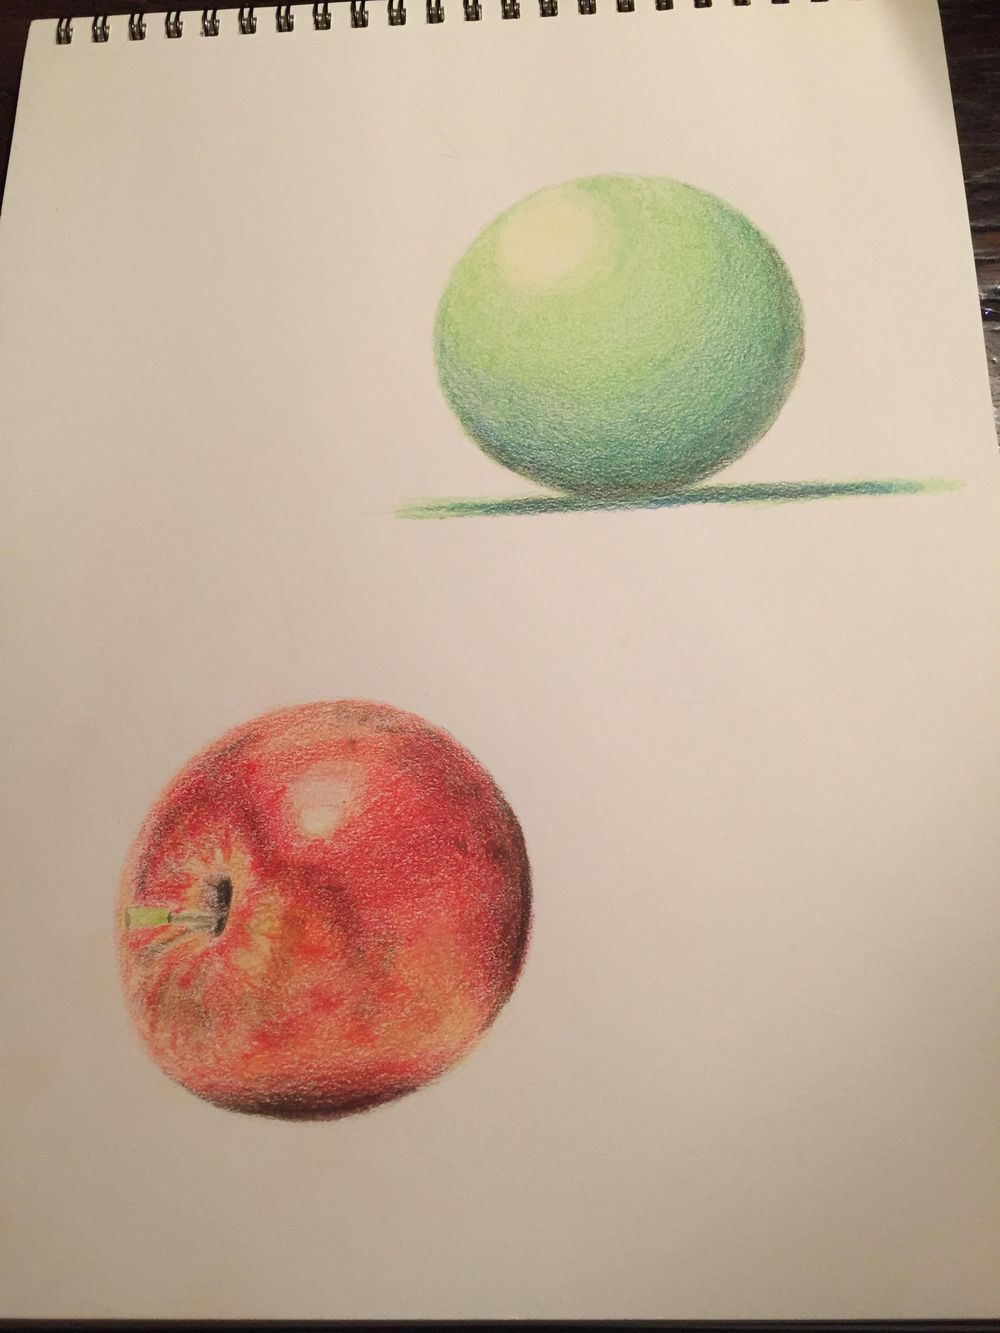 Sphere + Apple - image 1 - student project